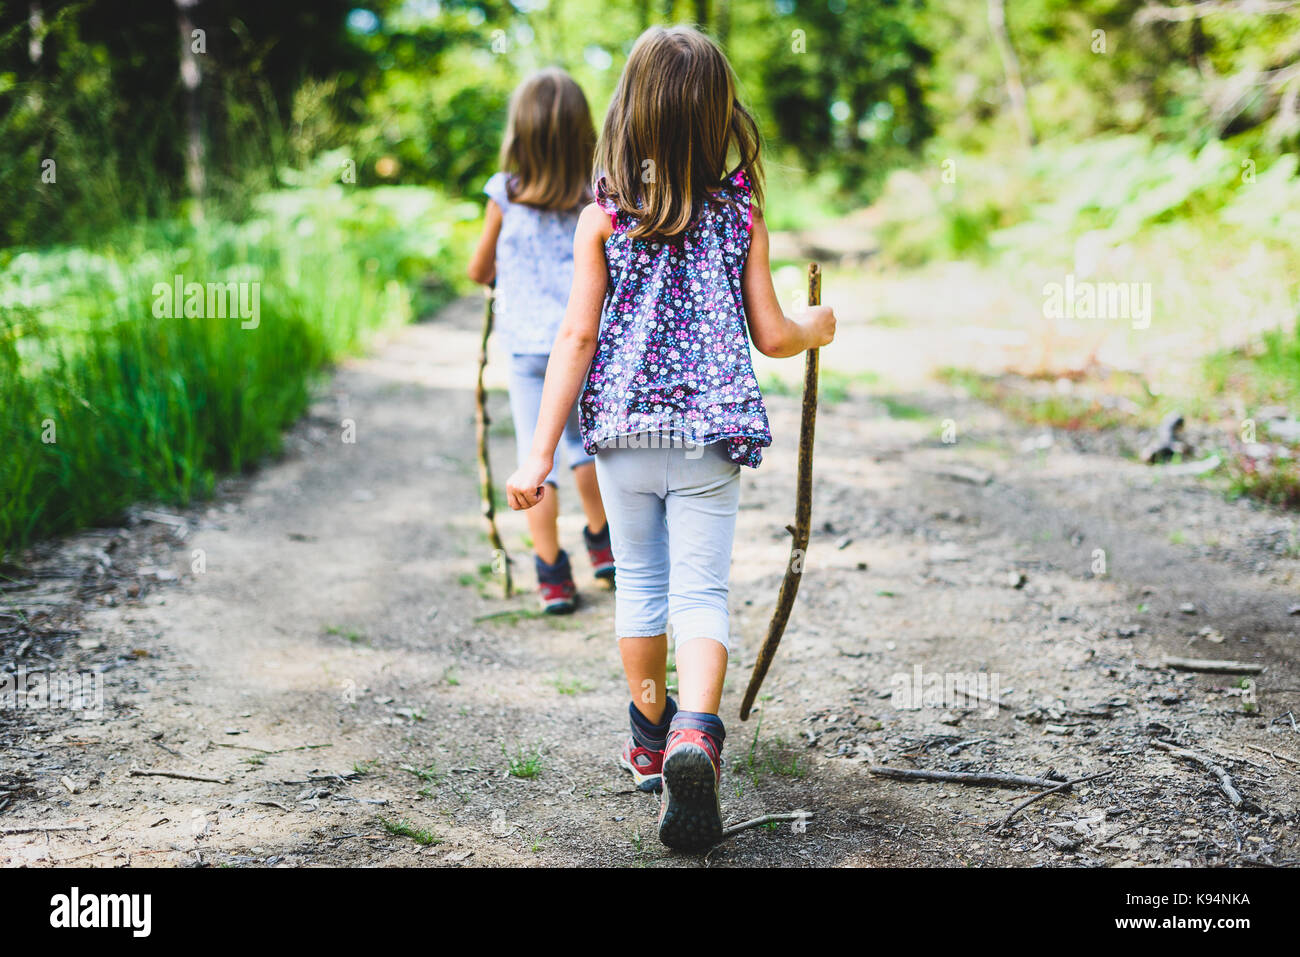 Children - twin girls are hiking in the mountains. Active family, parents and children mountaineering in the nature. - Stock Image